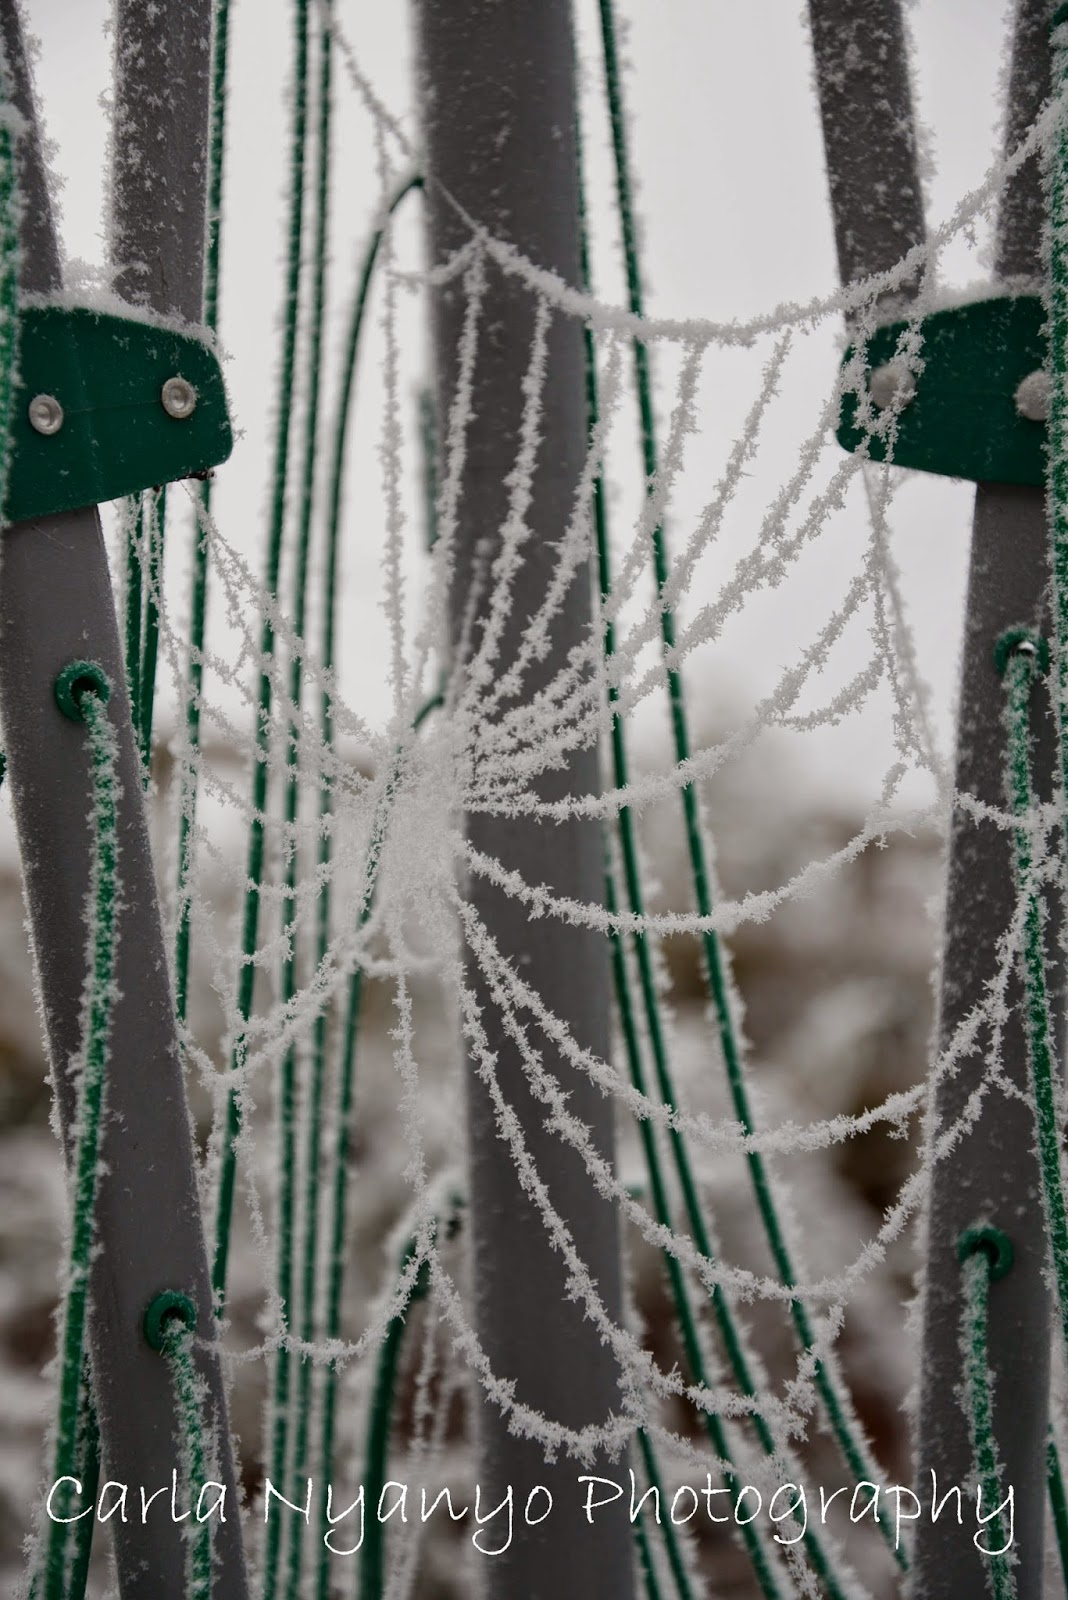 frosty spider web 2